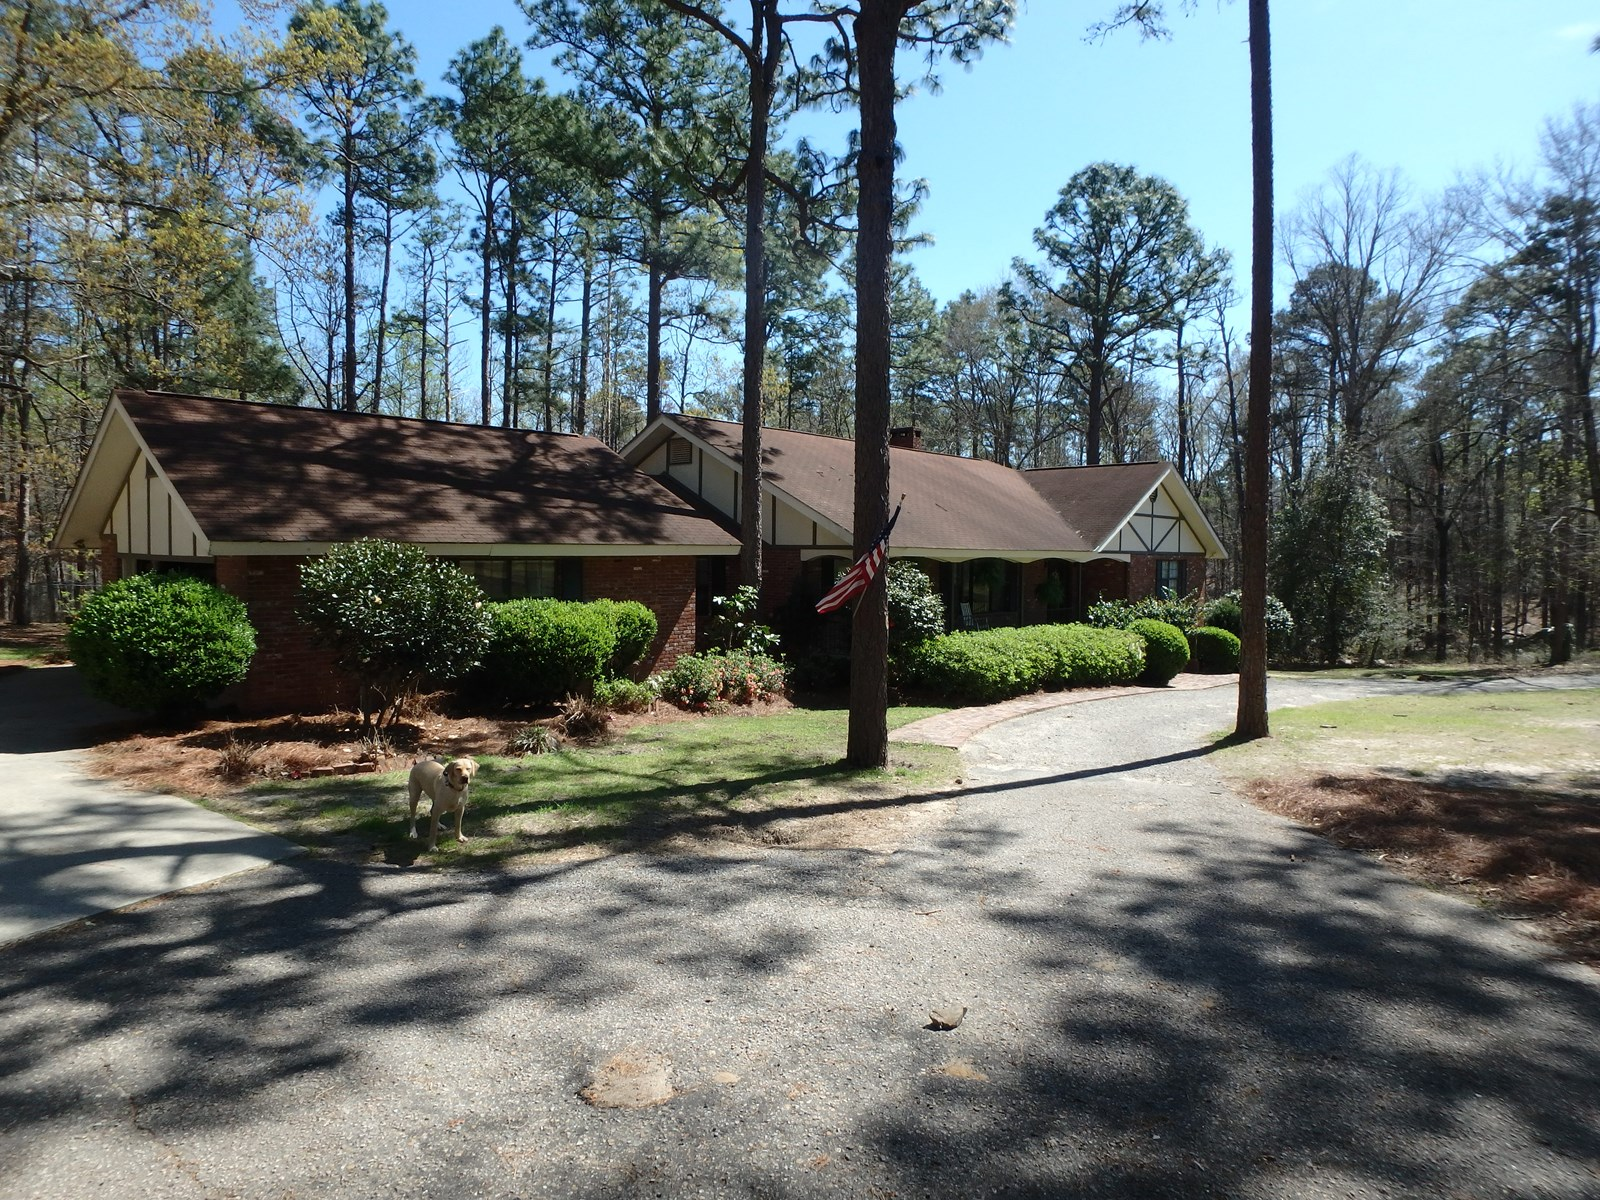 Residential Home on 3.66 Acres in Eufaula, Alabama